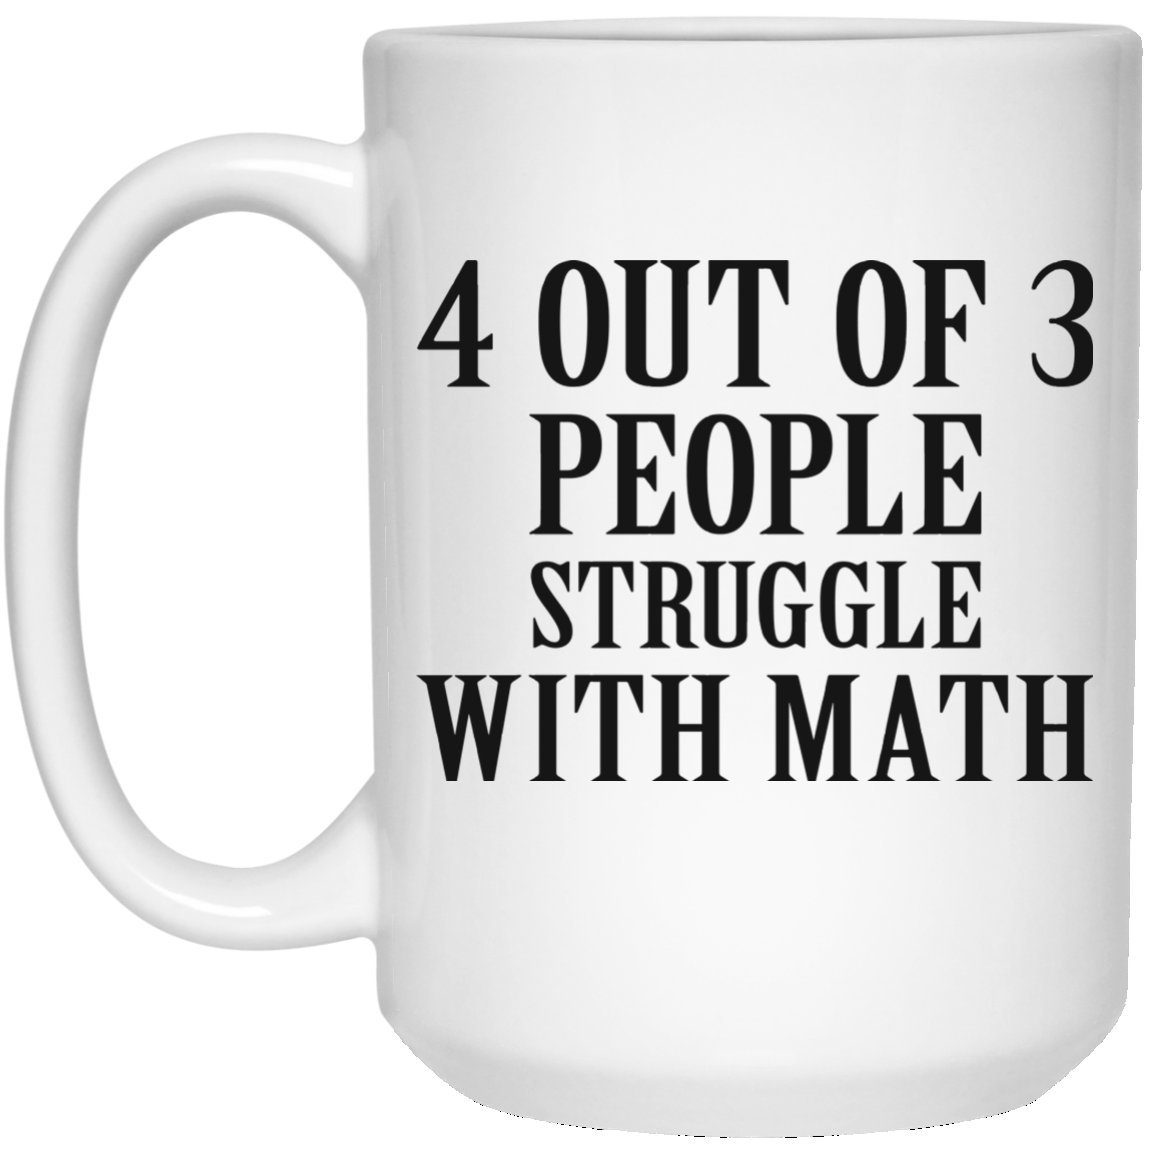 Kingdom Creations 4 out of 3 people Struggle With Math Coffee Mug Cup, 15 oz, White